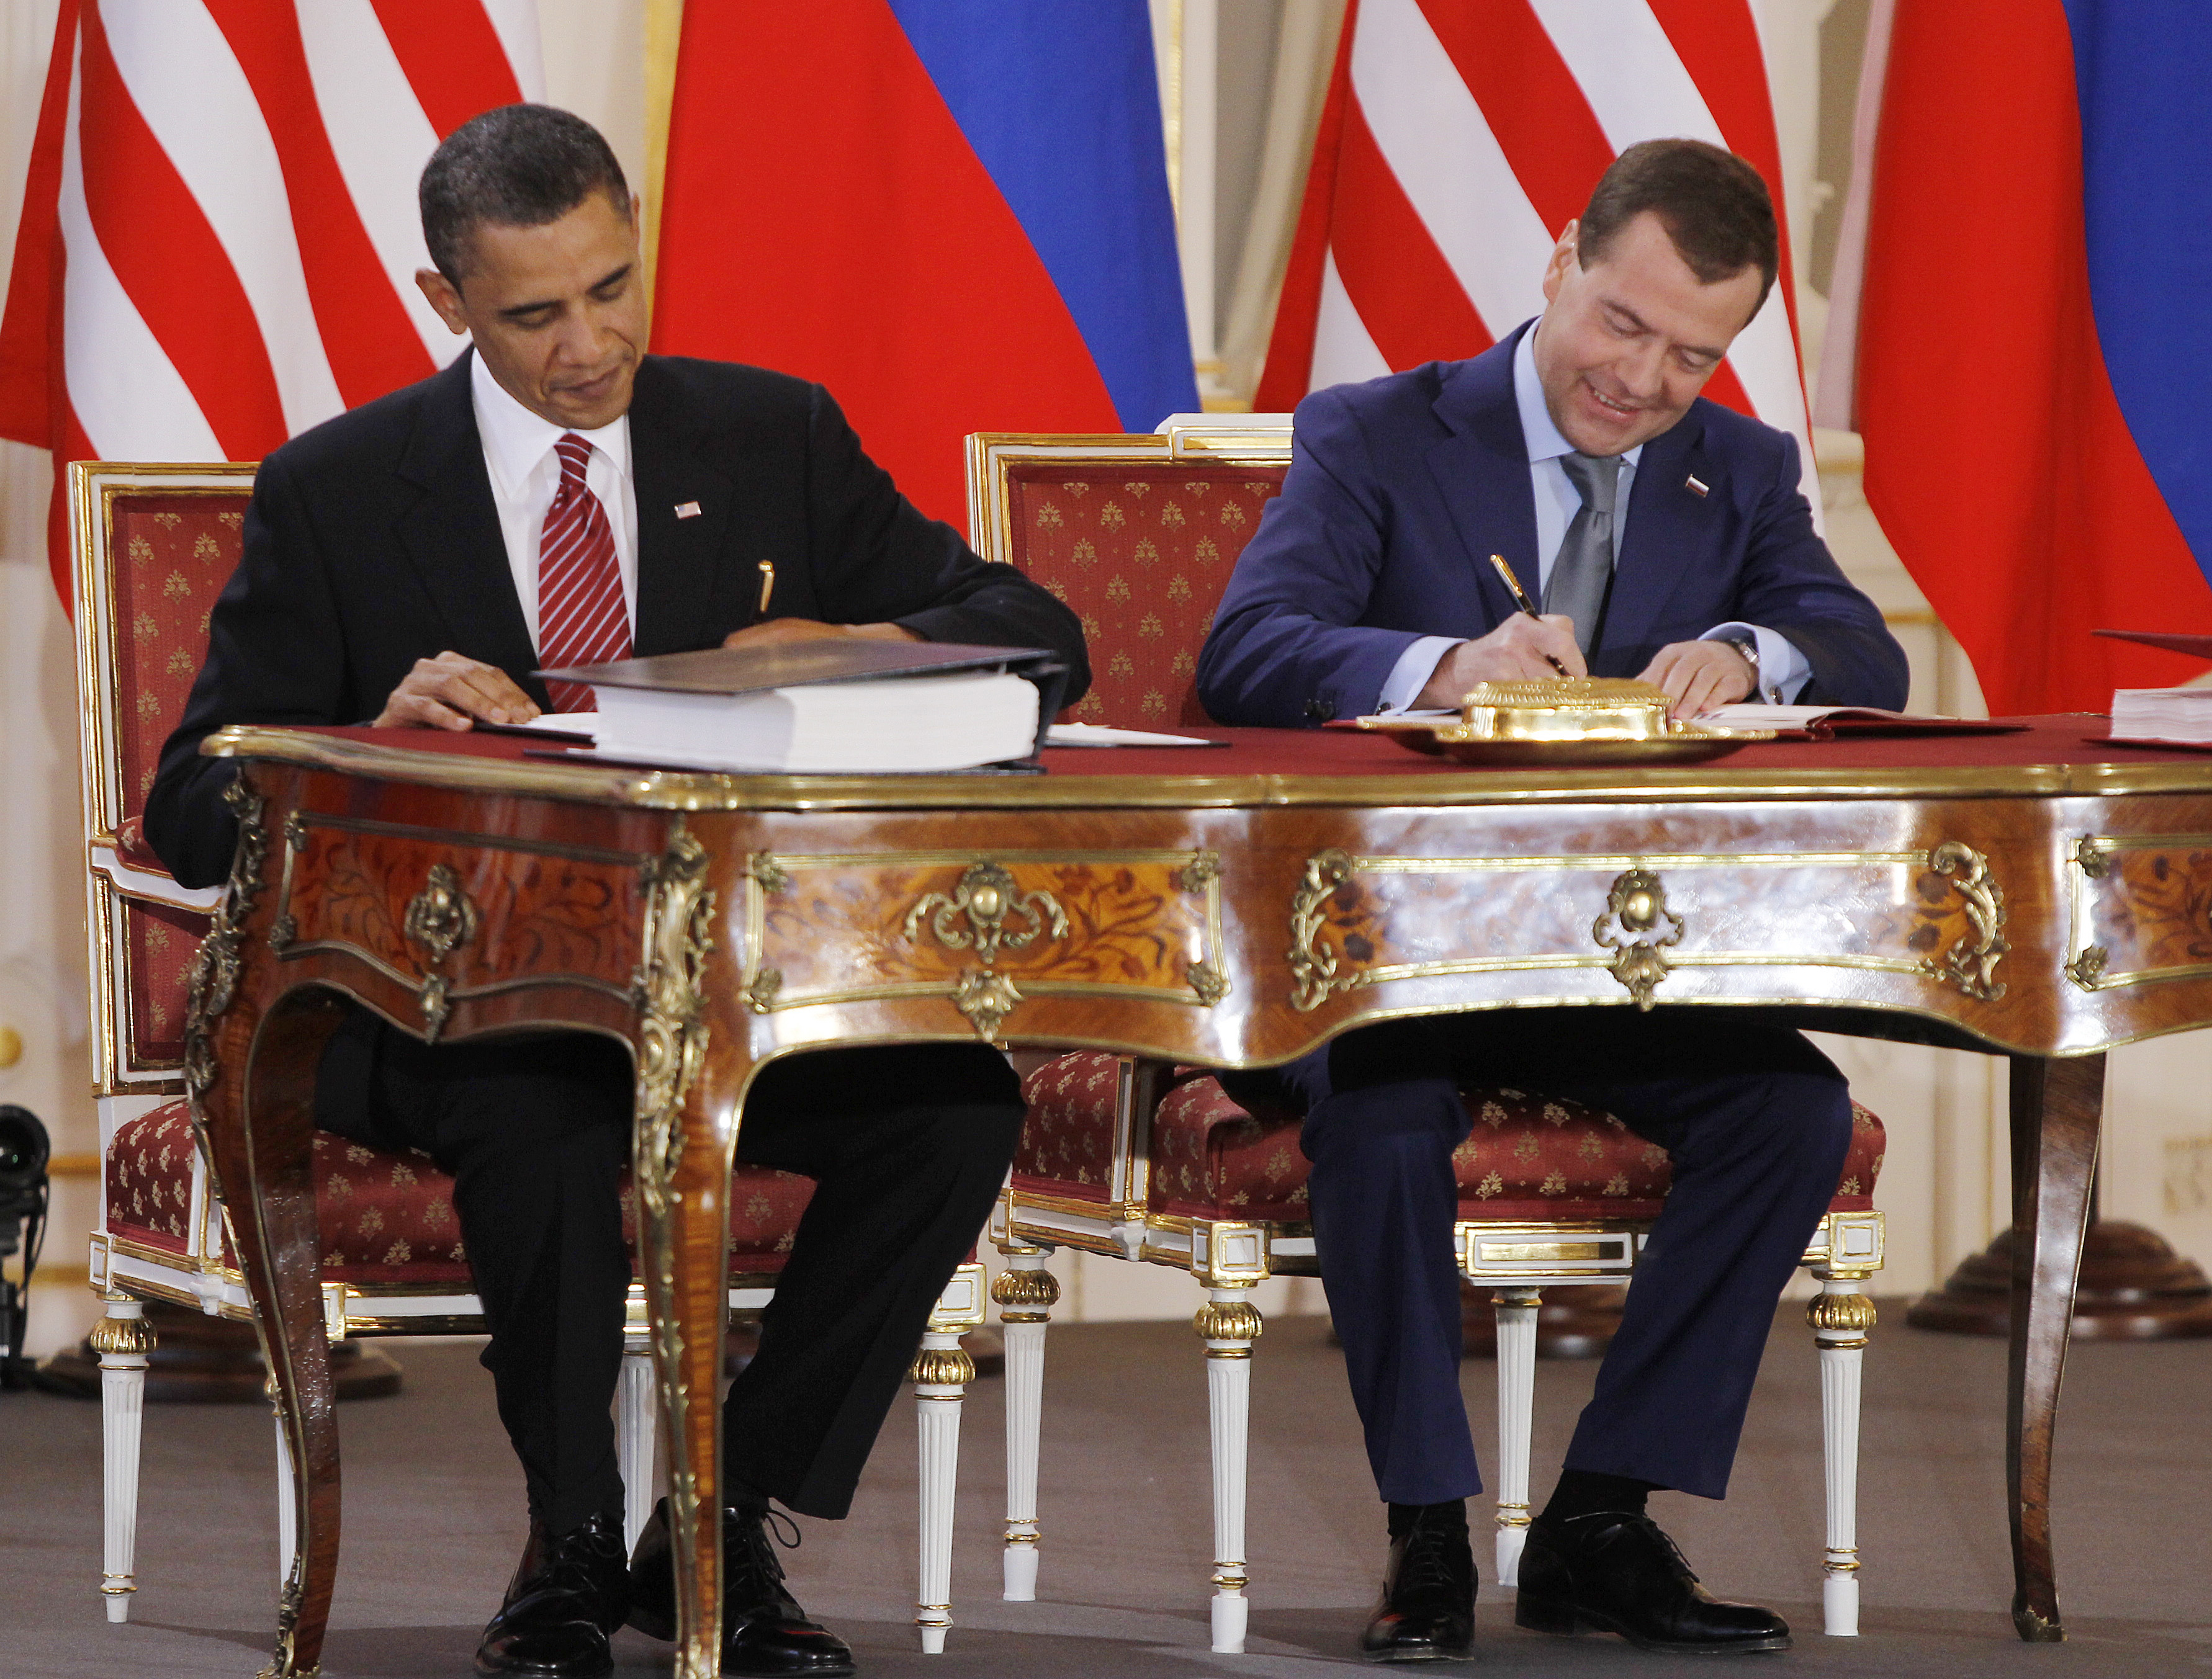 US, Russia to seek 1-year nuclear pact extension